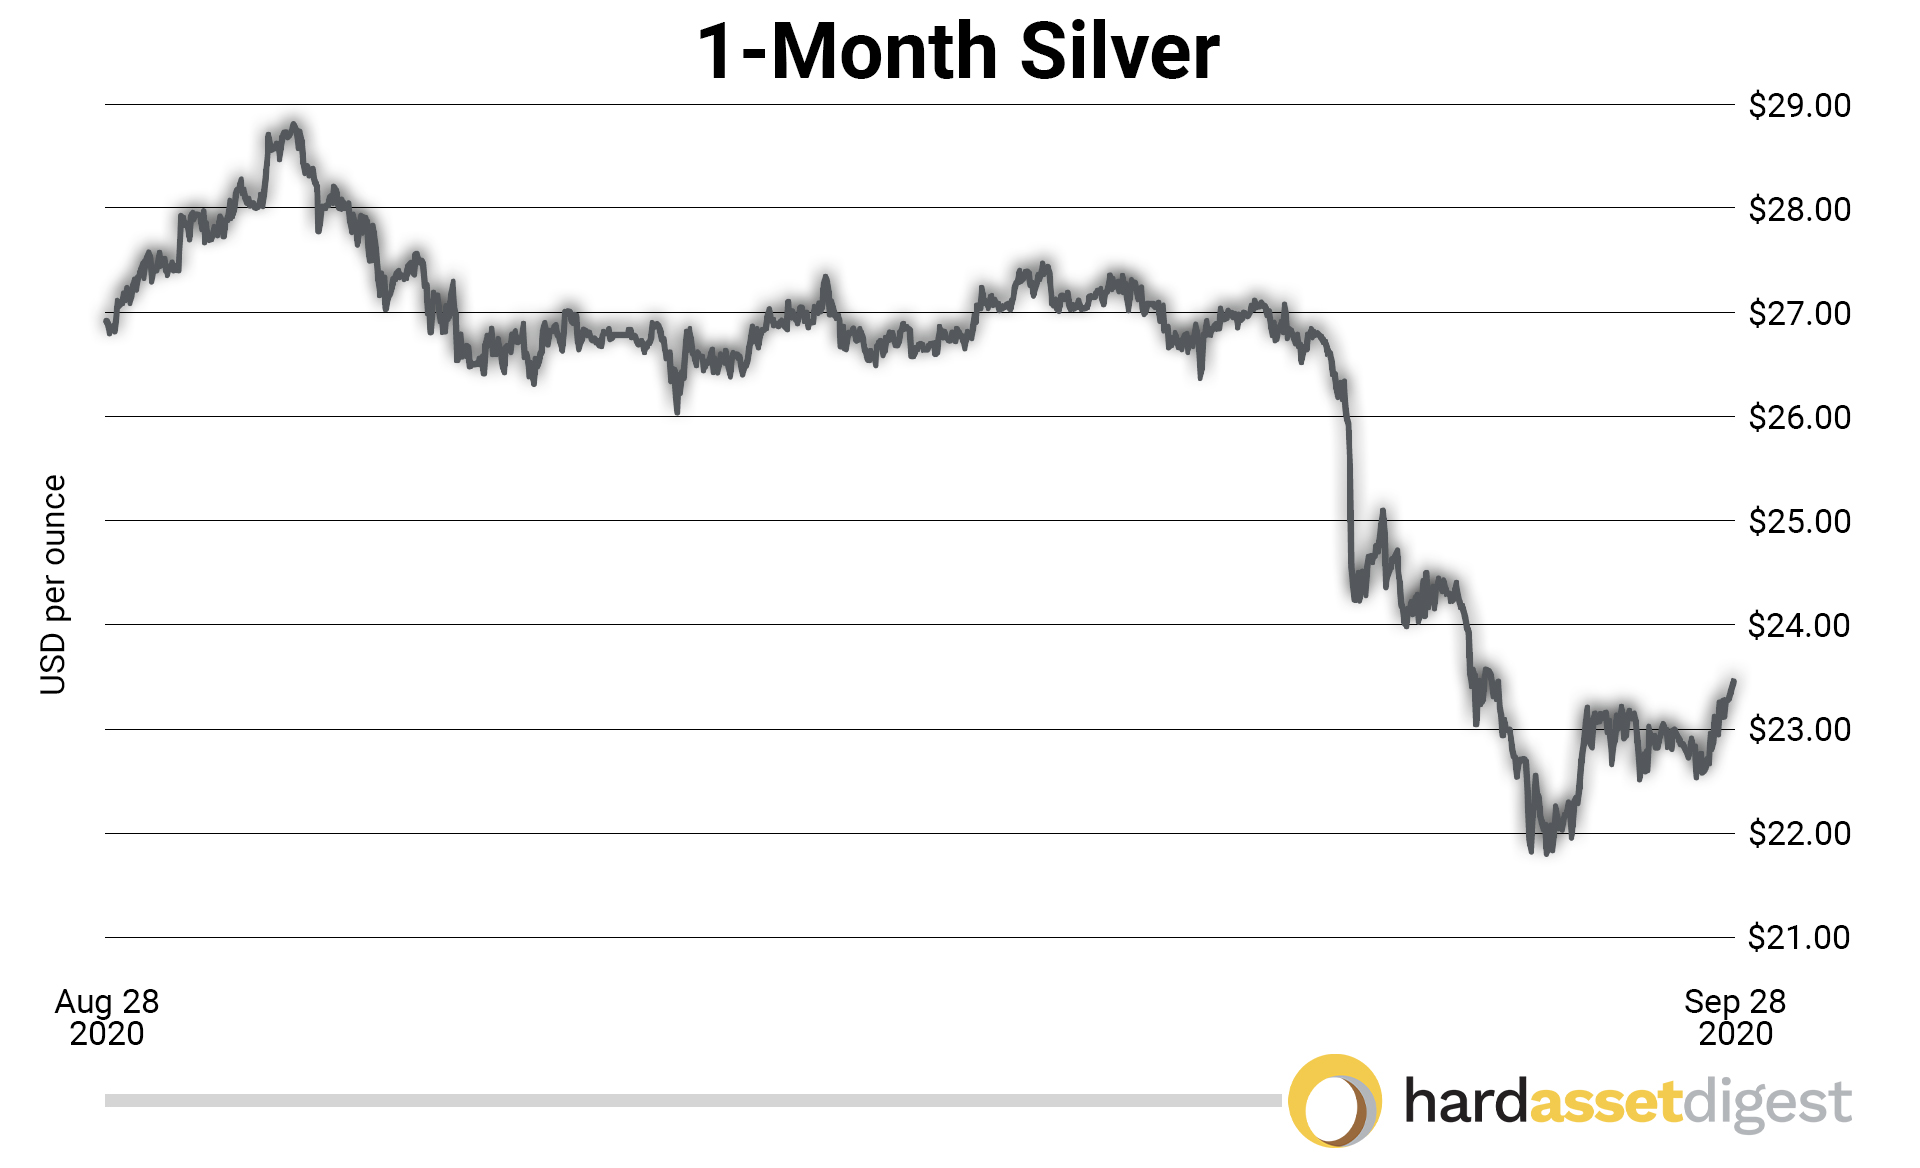 1month-silver-usd-per-ounce